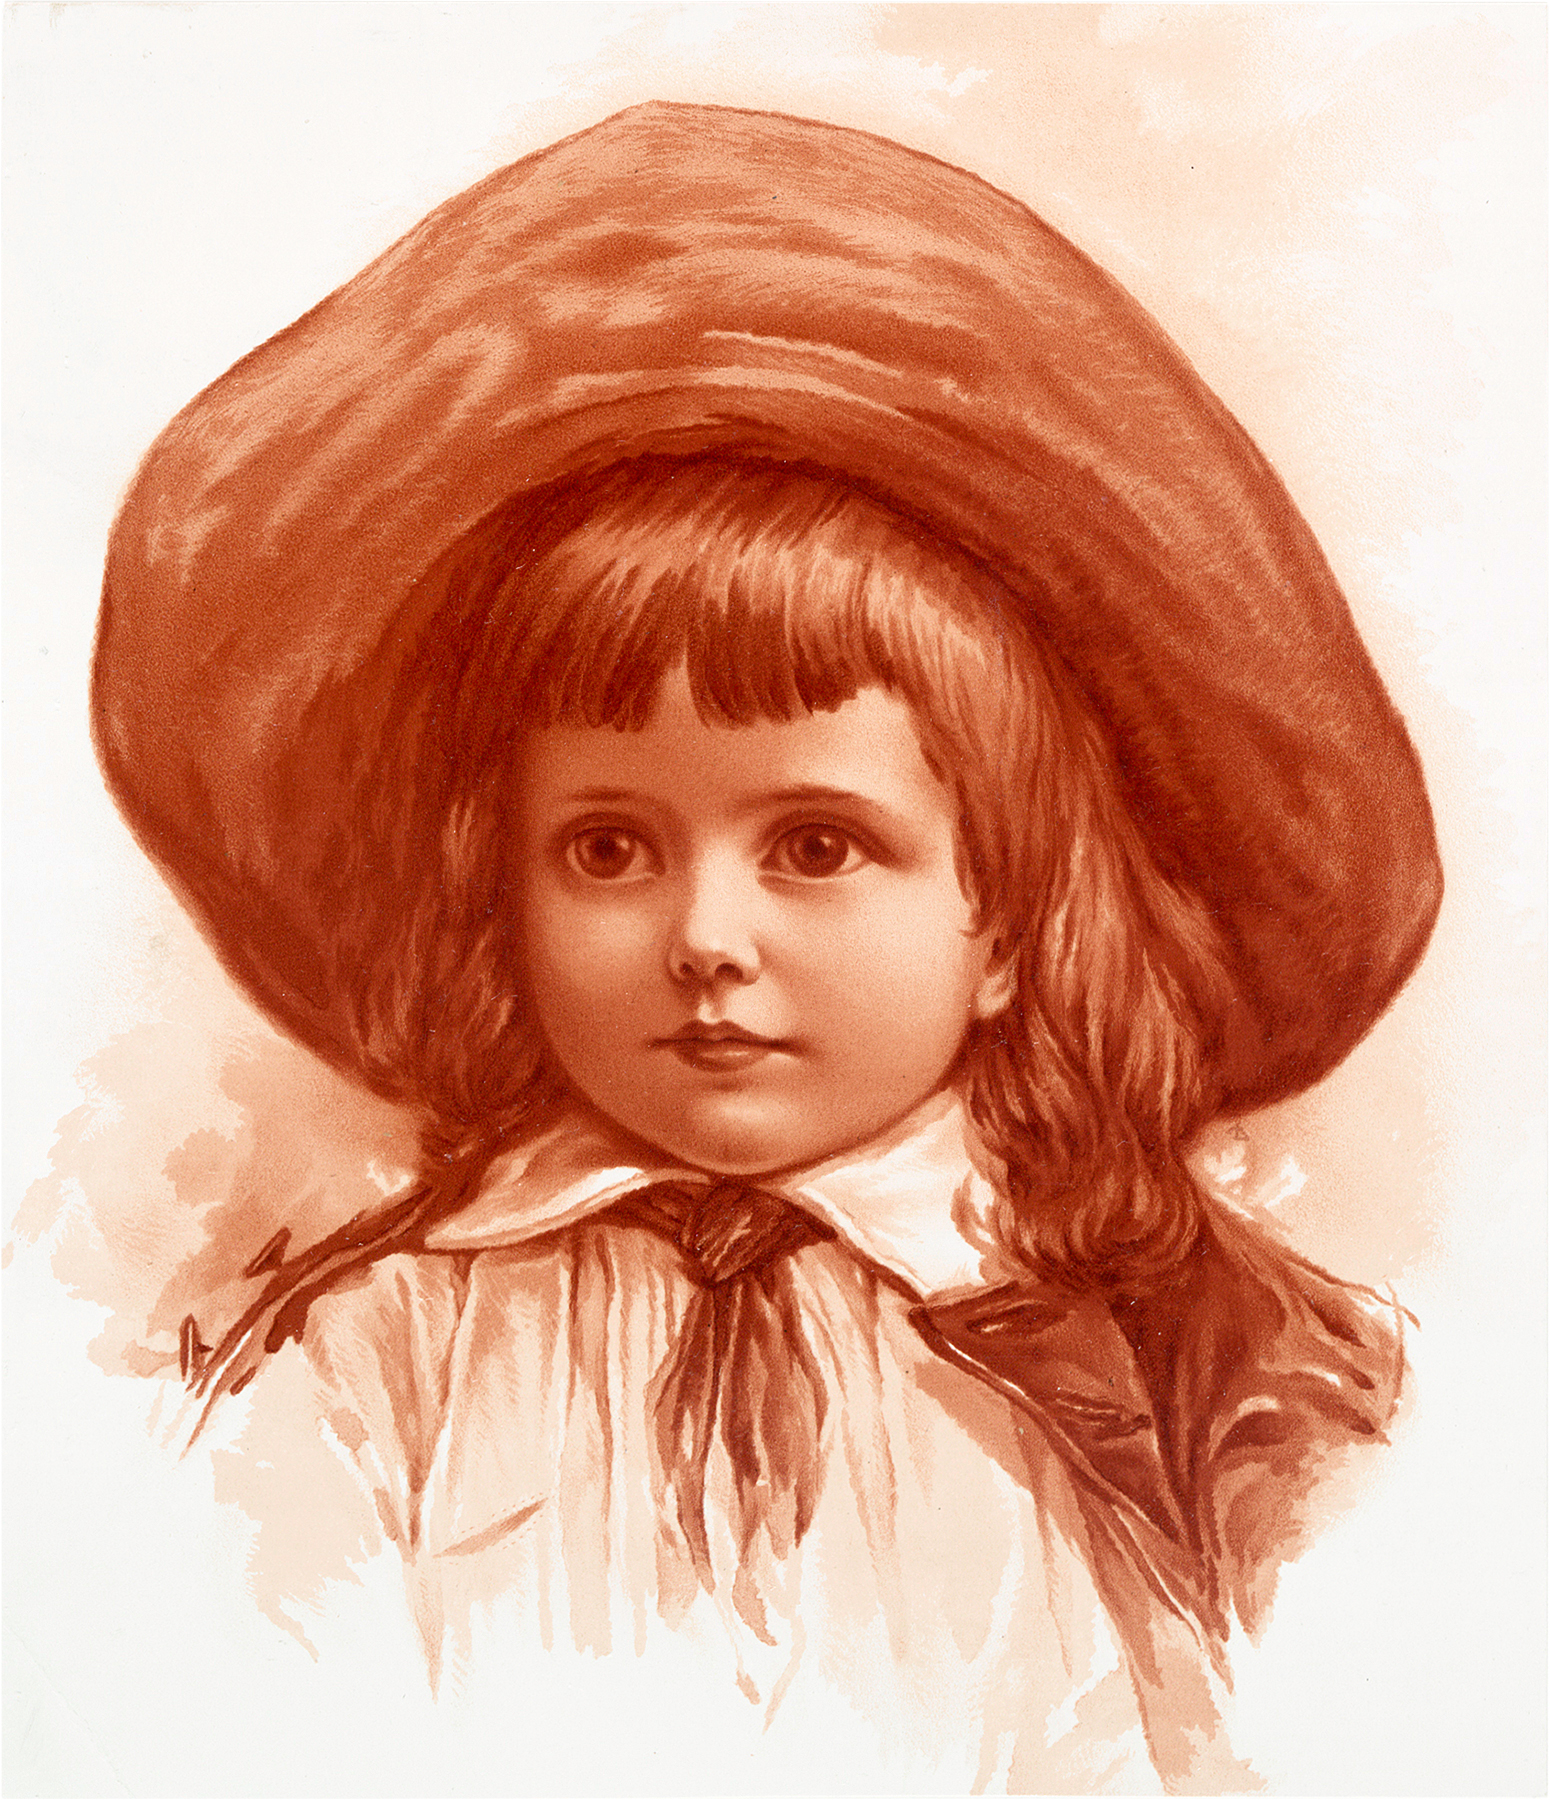 Vintage Child in Wide Brimmed Hat Sepia Image